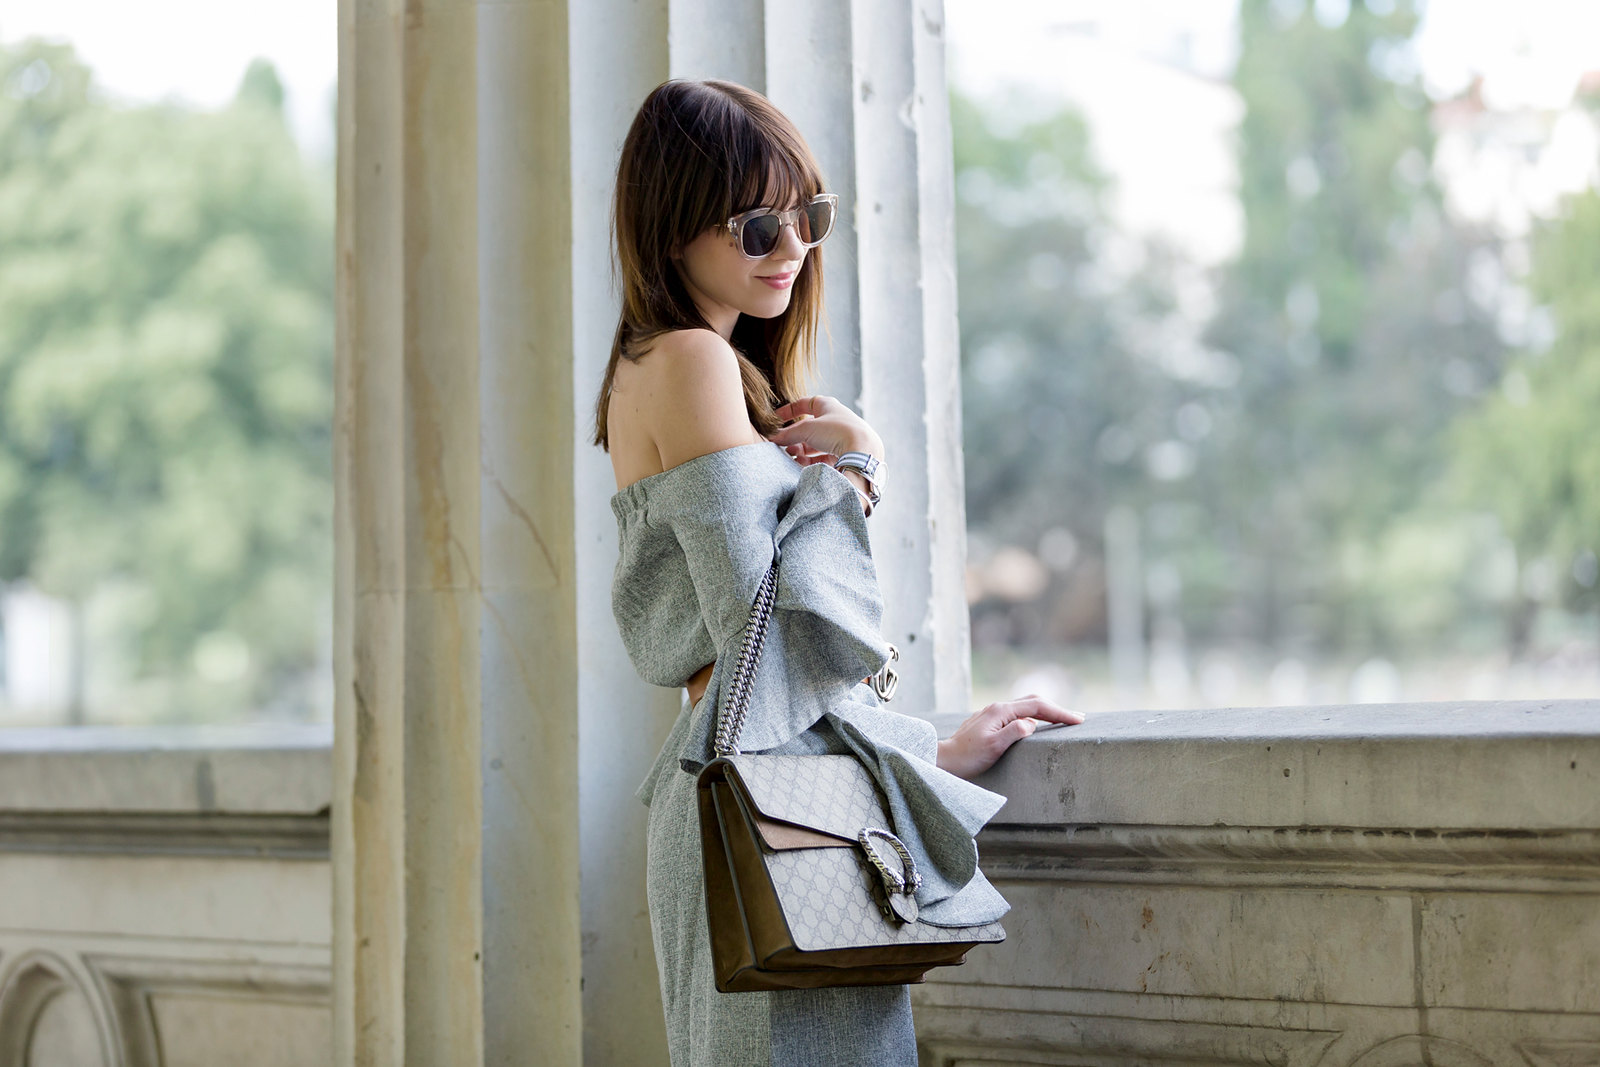 ootd chicwish grey off-shoulder dress volants chic gucci belt dionysus bag gg le specs sunglasses berlin museumsinsel museum island tourist fashionblogger berlin blogger cats & dogs fashion blog ricarda schernus modeblogger 2